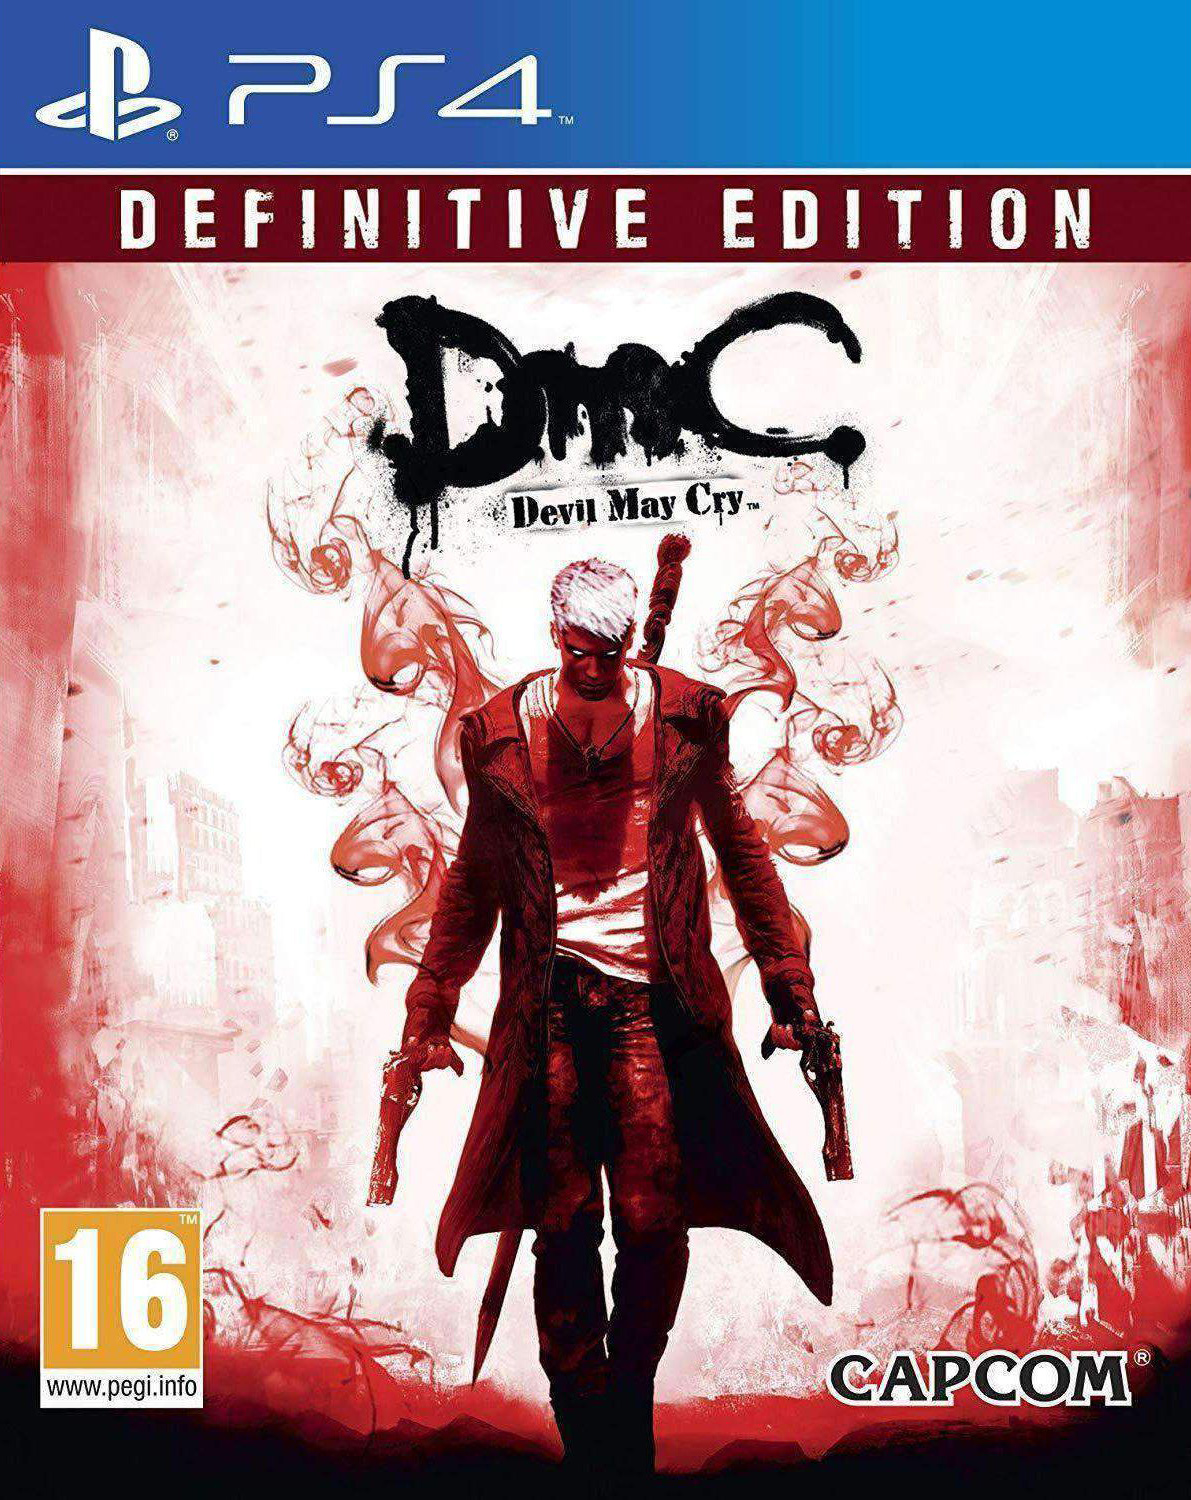 DmC: Devil May Cry - Definitive Edition [PS4] 5.05 / 6.72 / 7.02 [EUR] (2013) [Русский] (v1.03)